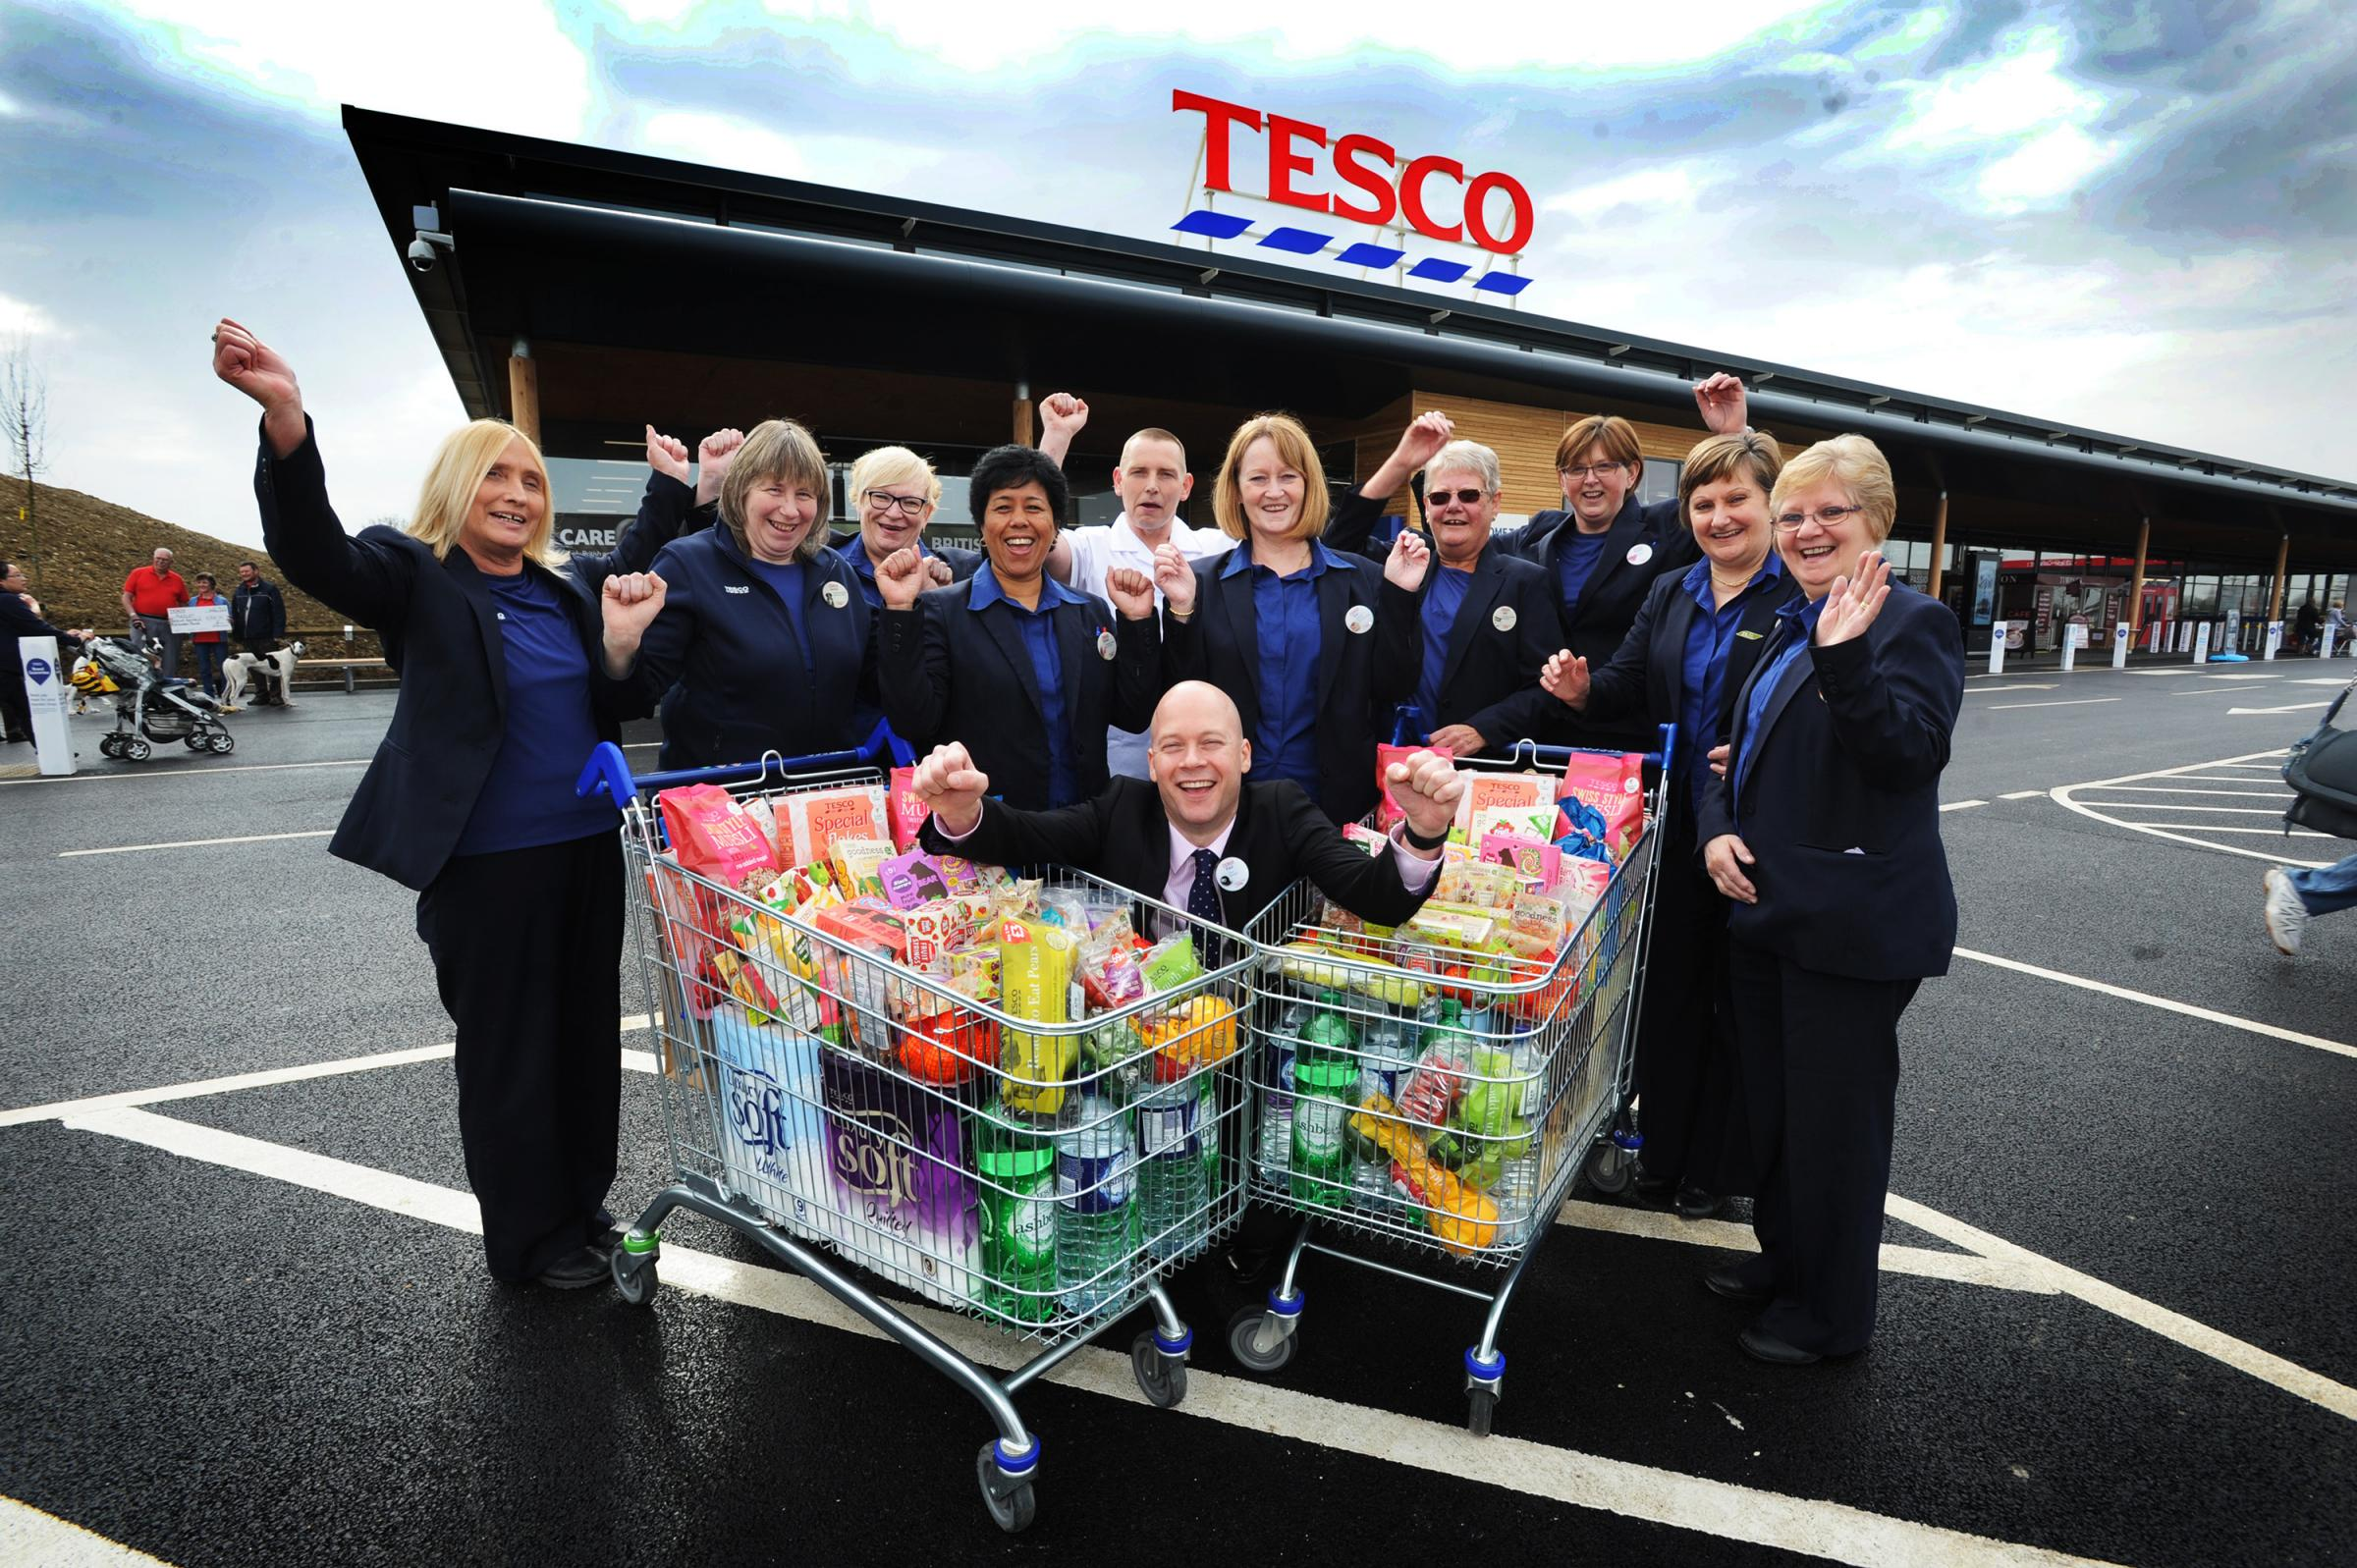 The official opening of Bicester's new Tesco superstore on April 14, 2016. Store manager Paul Phillips is pictured with long-serving staff members, L to R, Kathy Chester, Jackie Gibson, Ann Smith, Esther Boyce, Paul Upstone, Sue Smith, Gill Collings, Debb